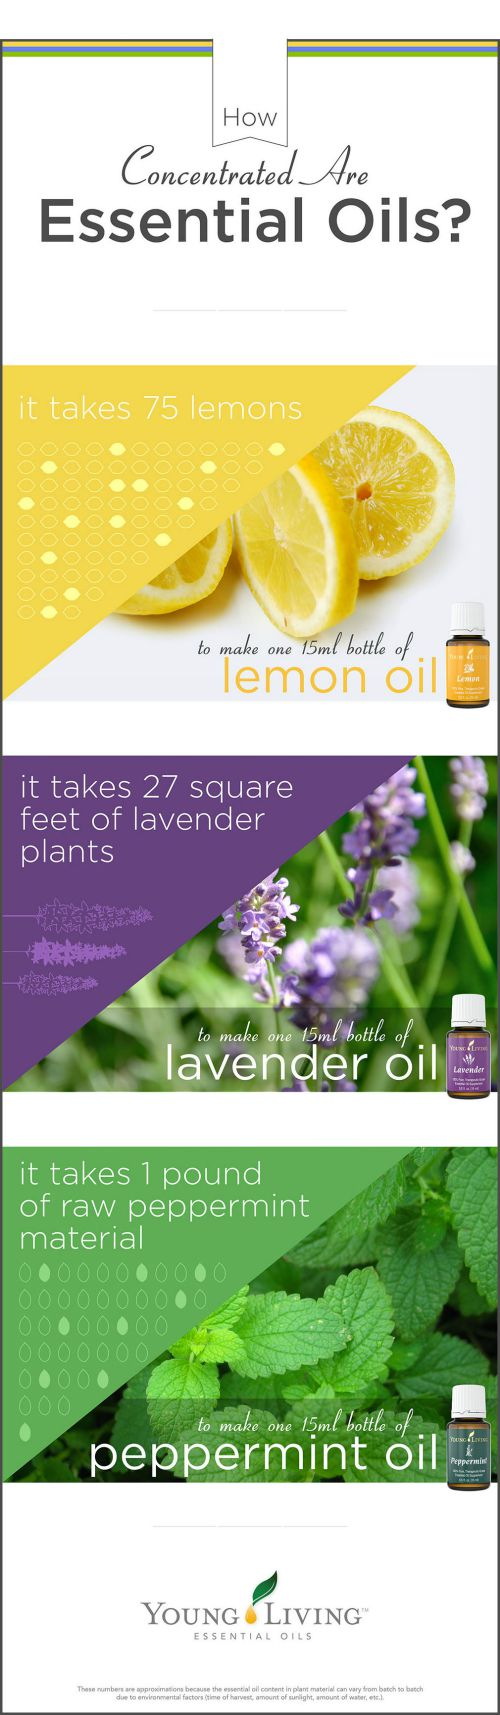 concentrated.essential.oils2